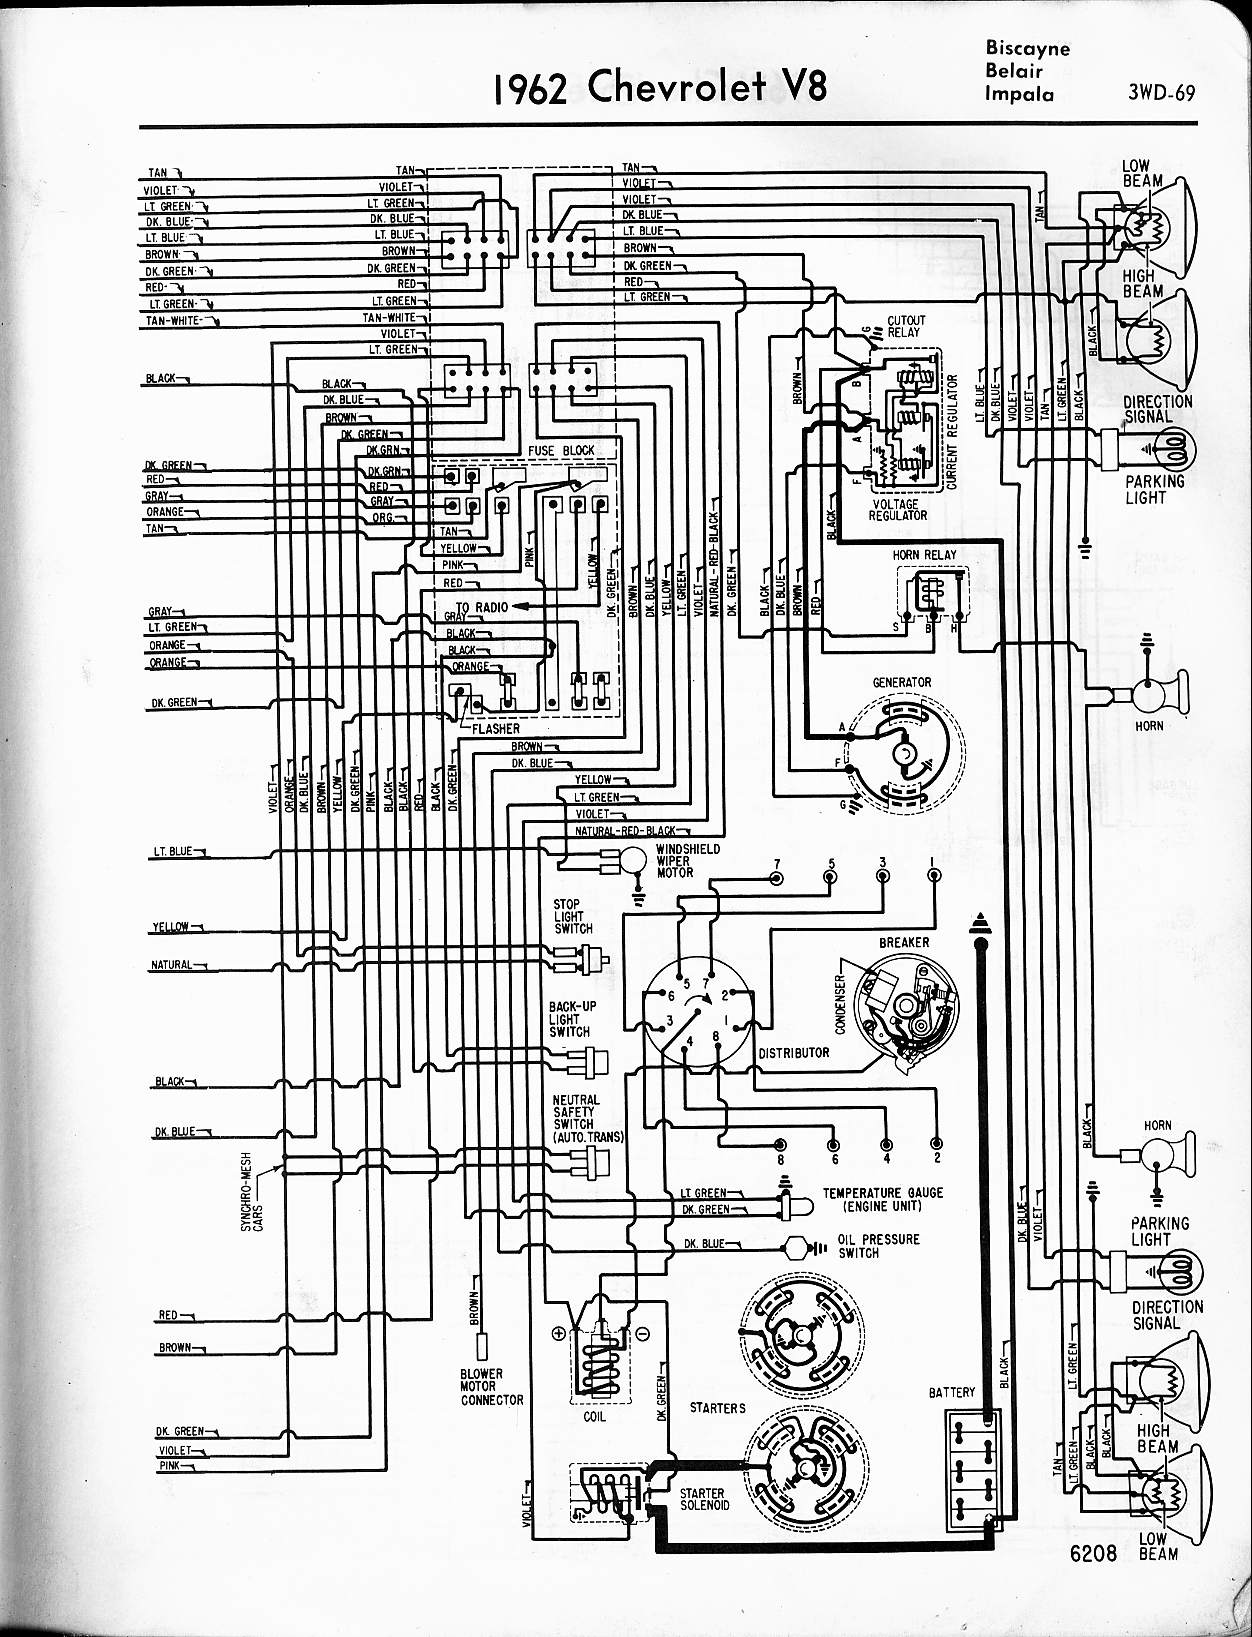 MWireChev62_3WD 069 57 65 chevy wiring diagrams 1962 impala wiring diagram at virtualis.co